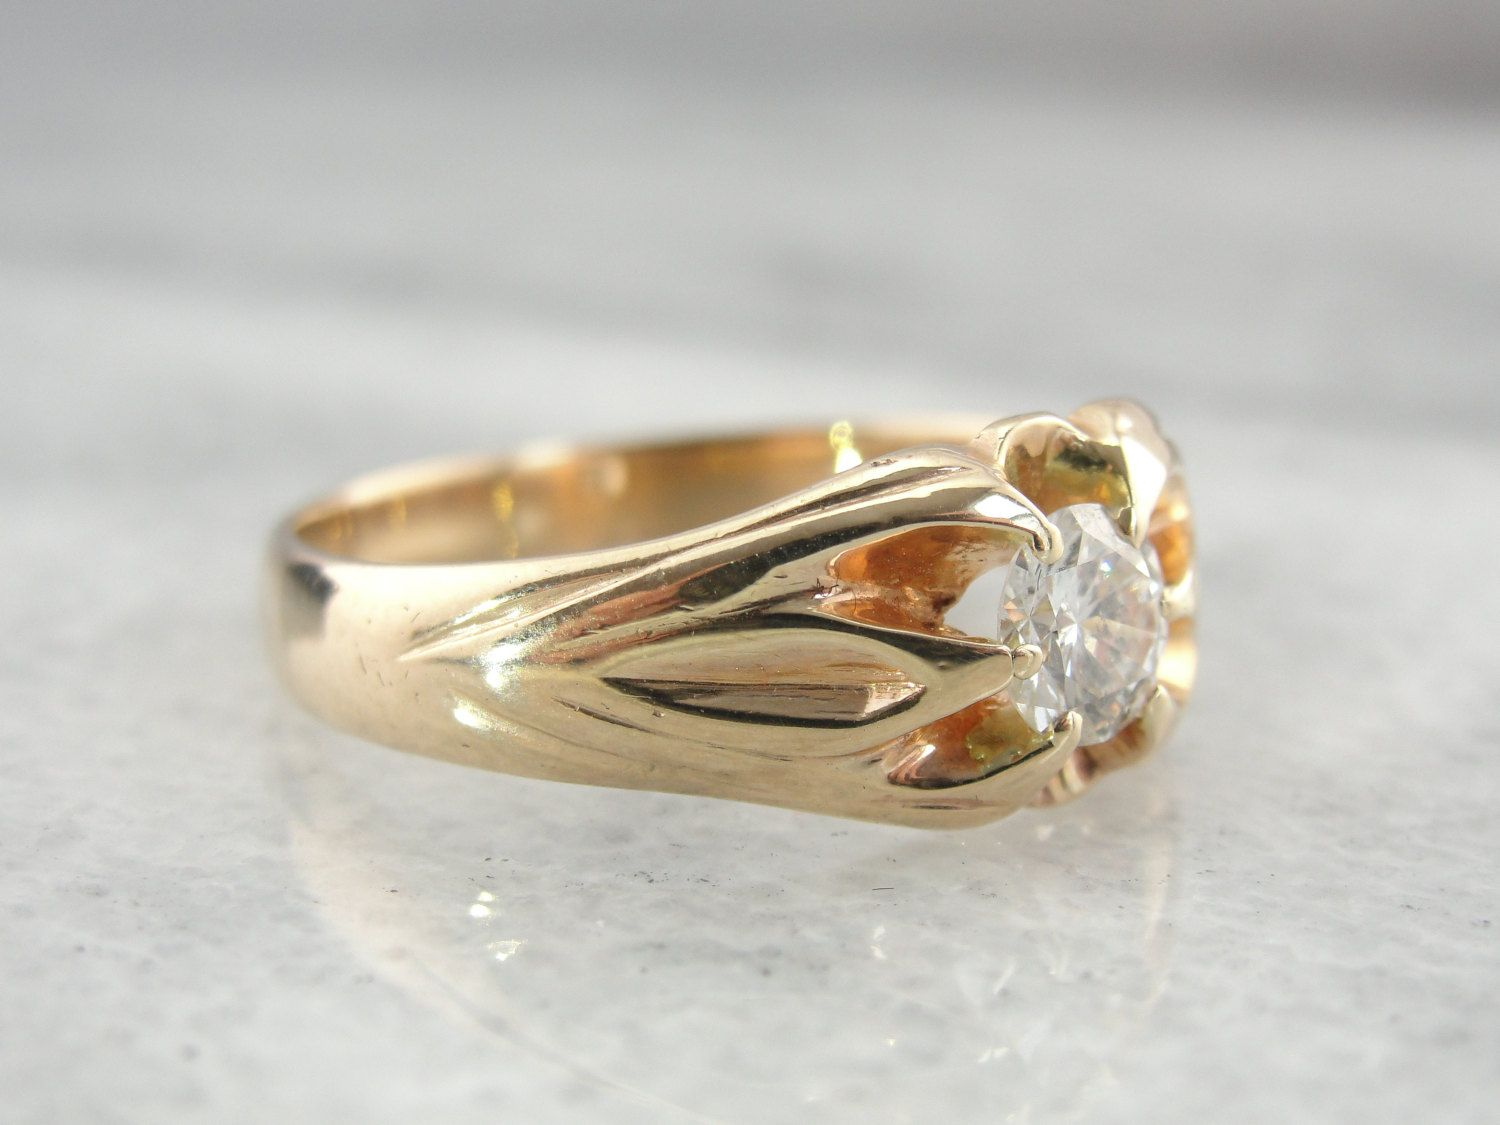 Large Diamond Ring For Man Or Woman Fine Gold Time Period: Victorian  (1850's –